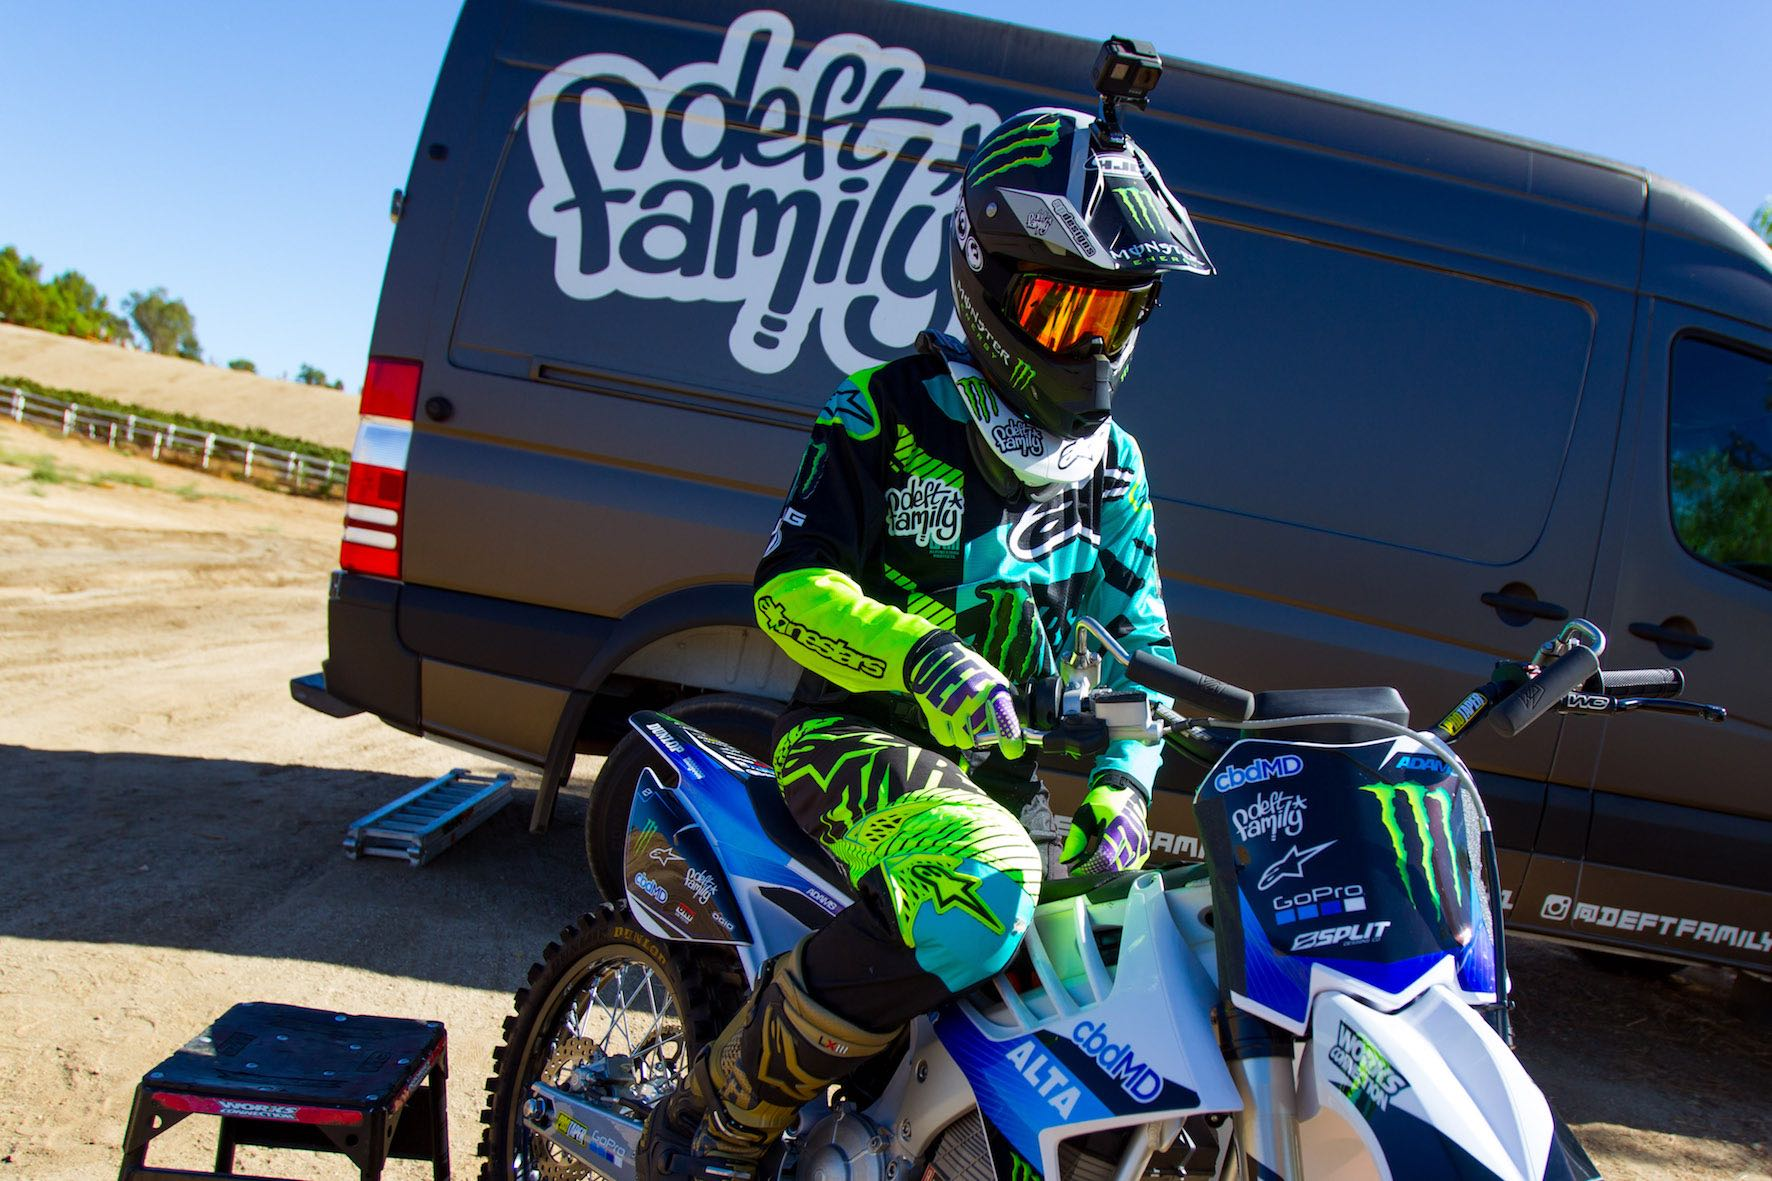 Interview with Freestyle Motocross rider Nate Adams